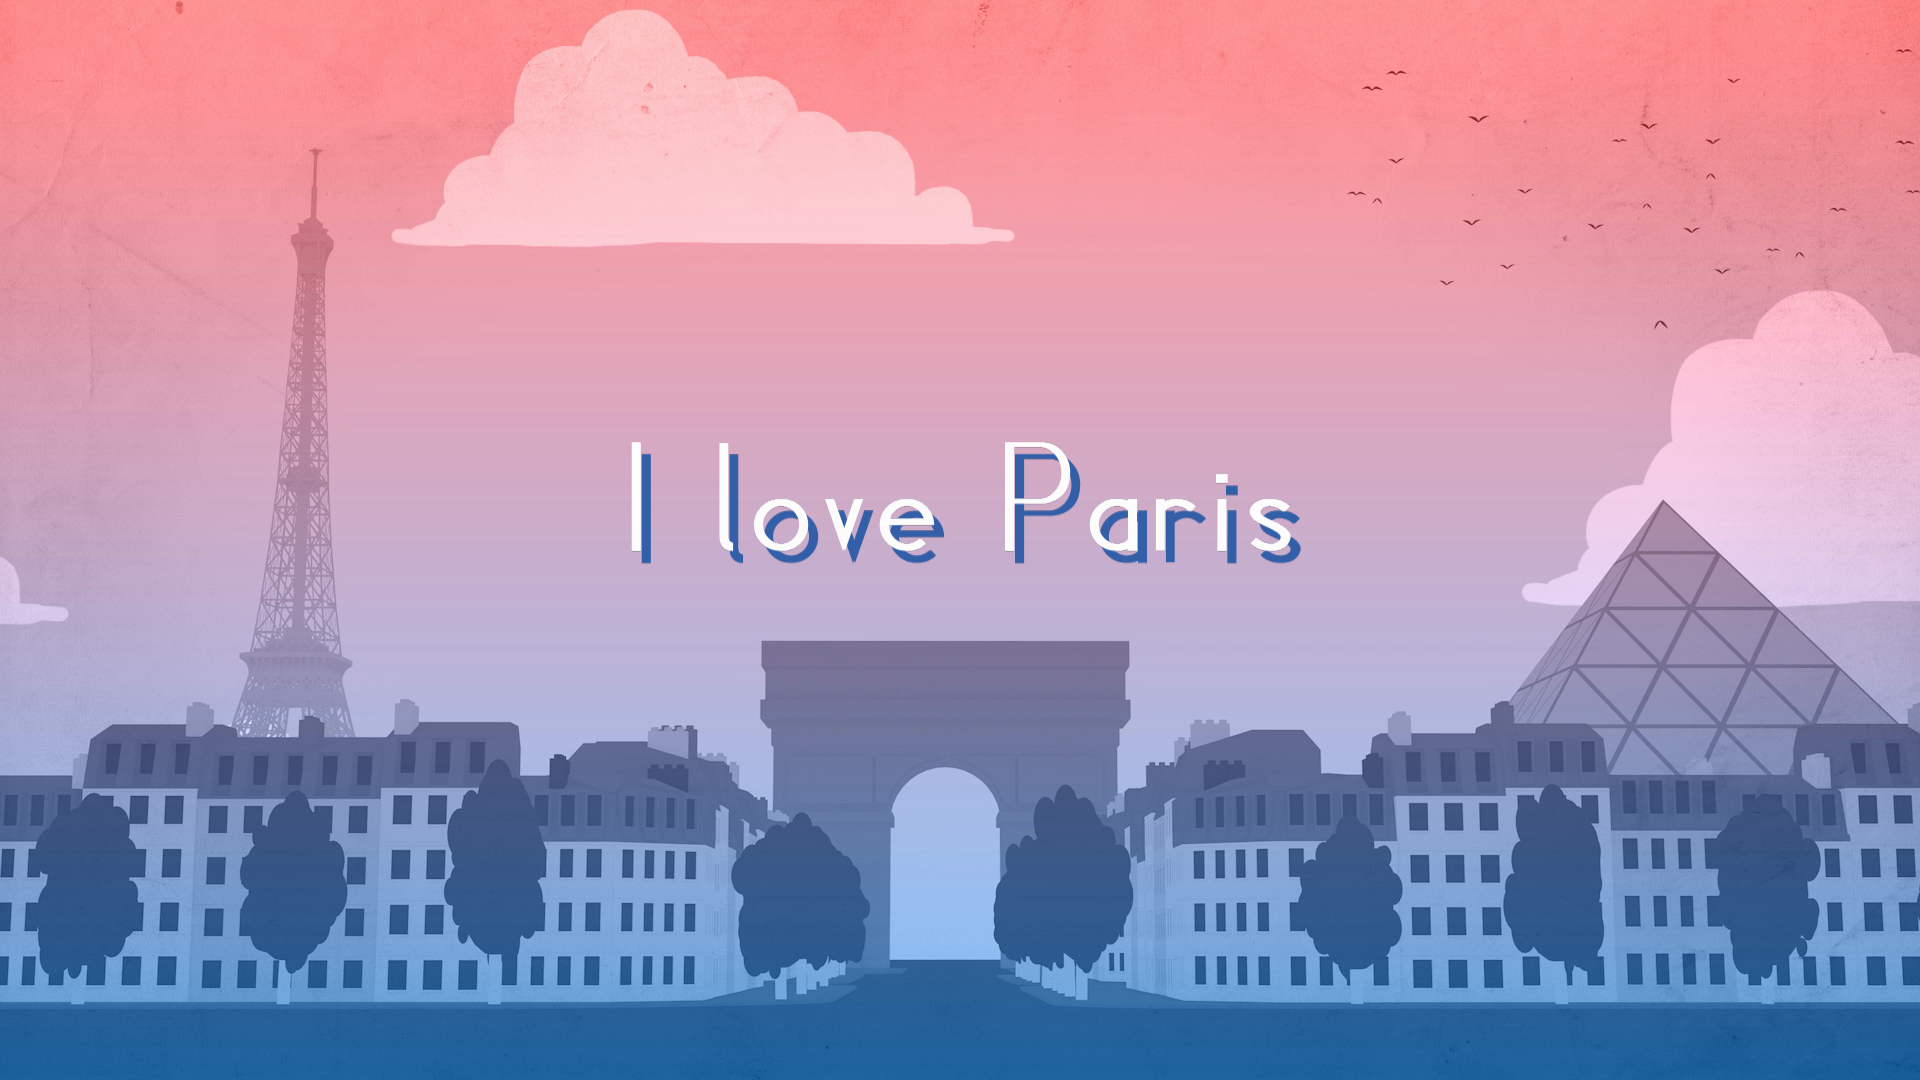 Paris_Theme_16_9